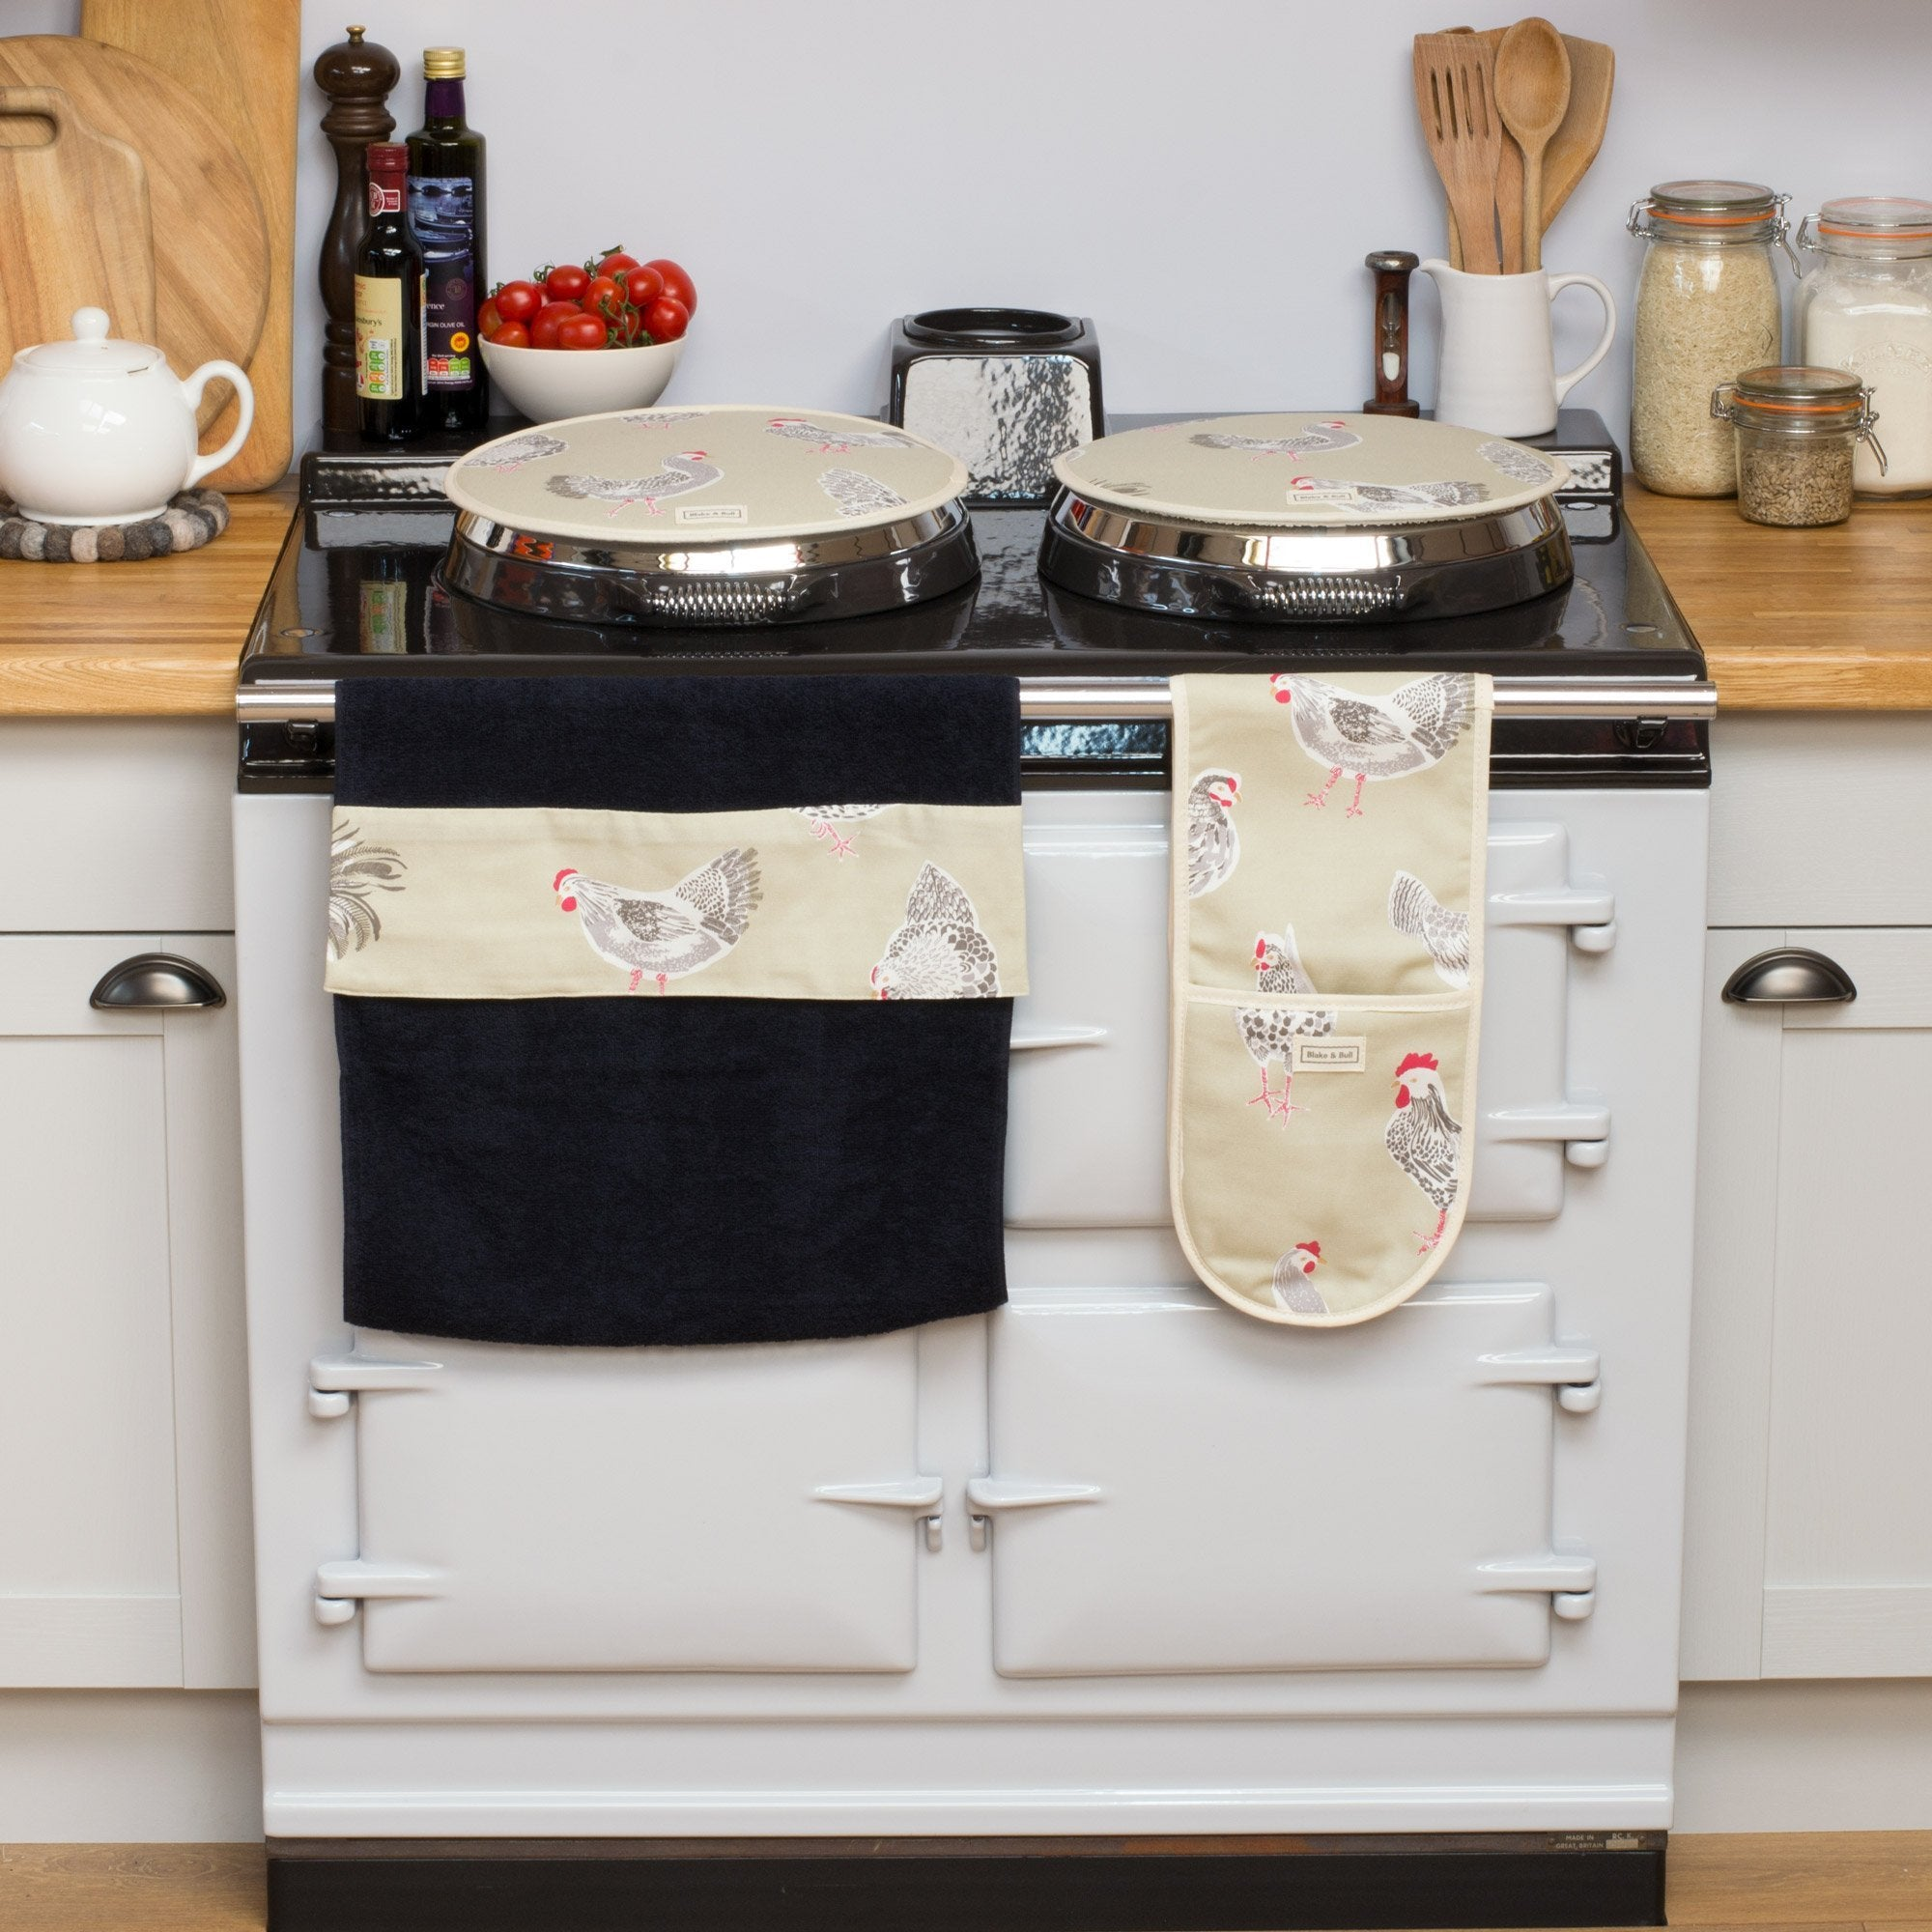 Blake & Bull original products for range cookers